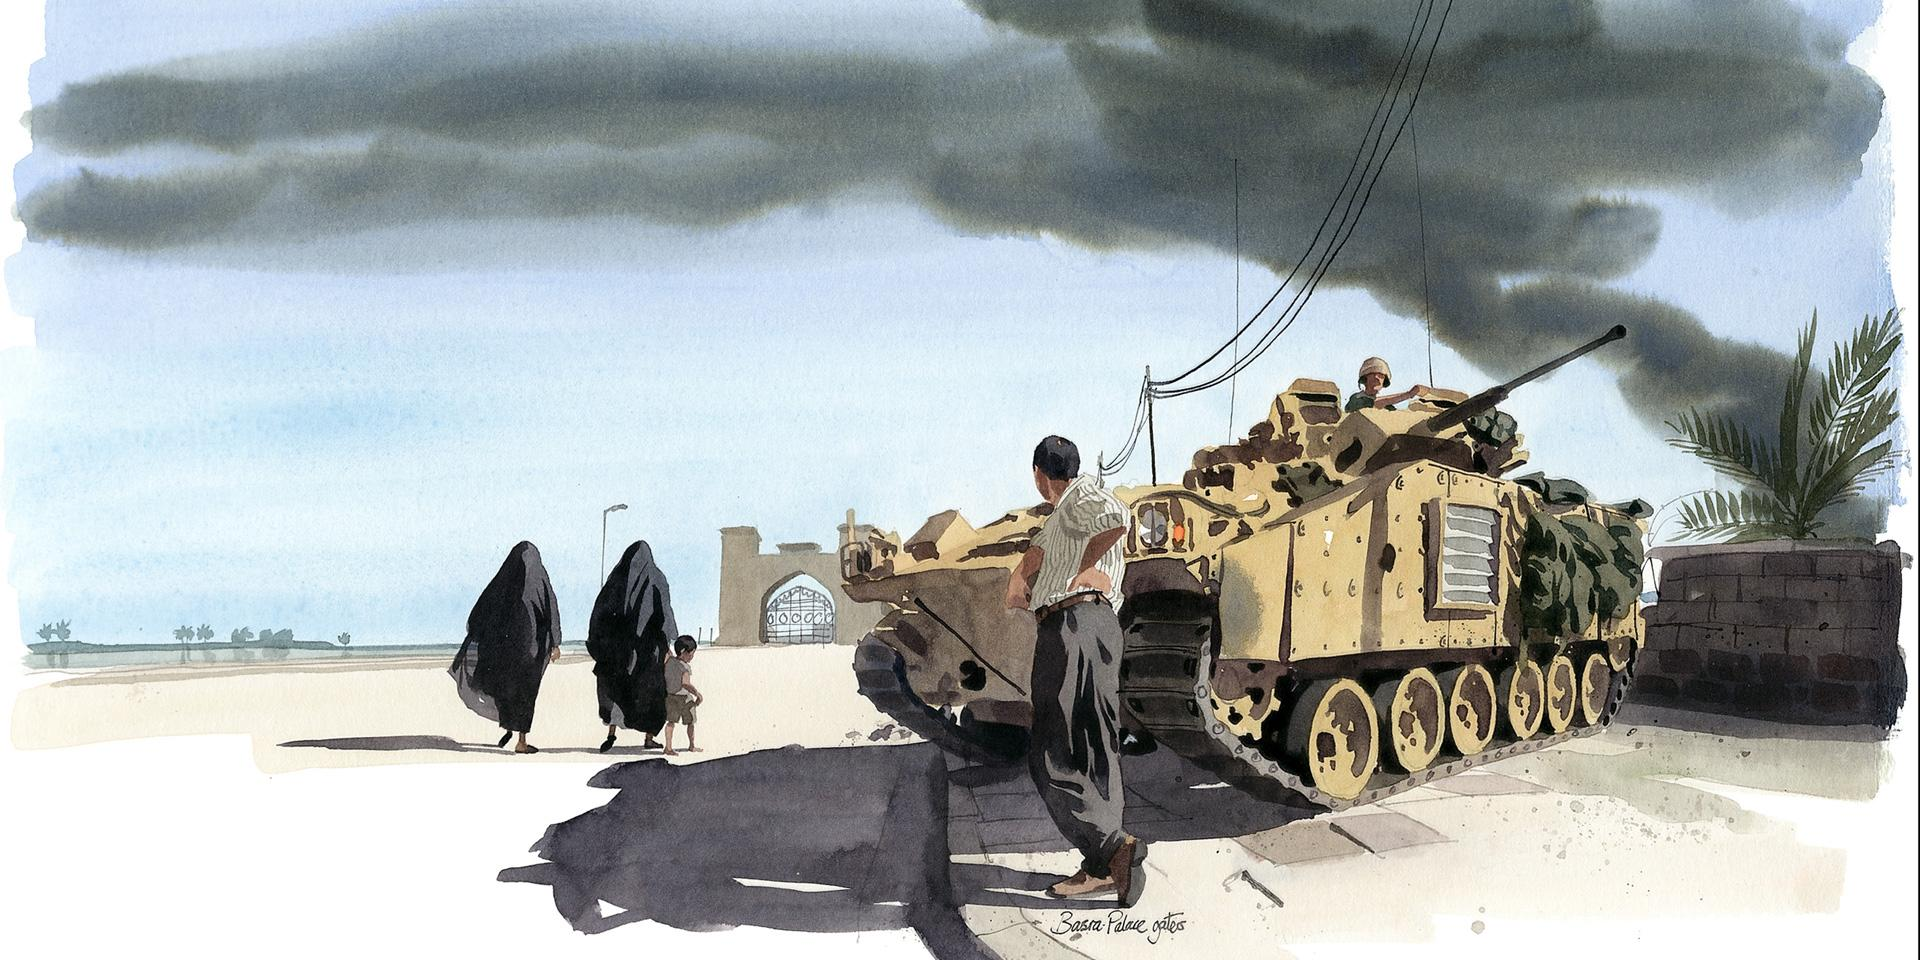 Basra Palace gates, April 2003 by Matthew Cook, 'The Times' War Artist,during Operation TELIC, Iraq (2003-2011)